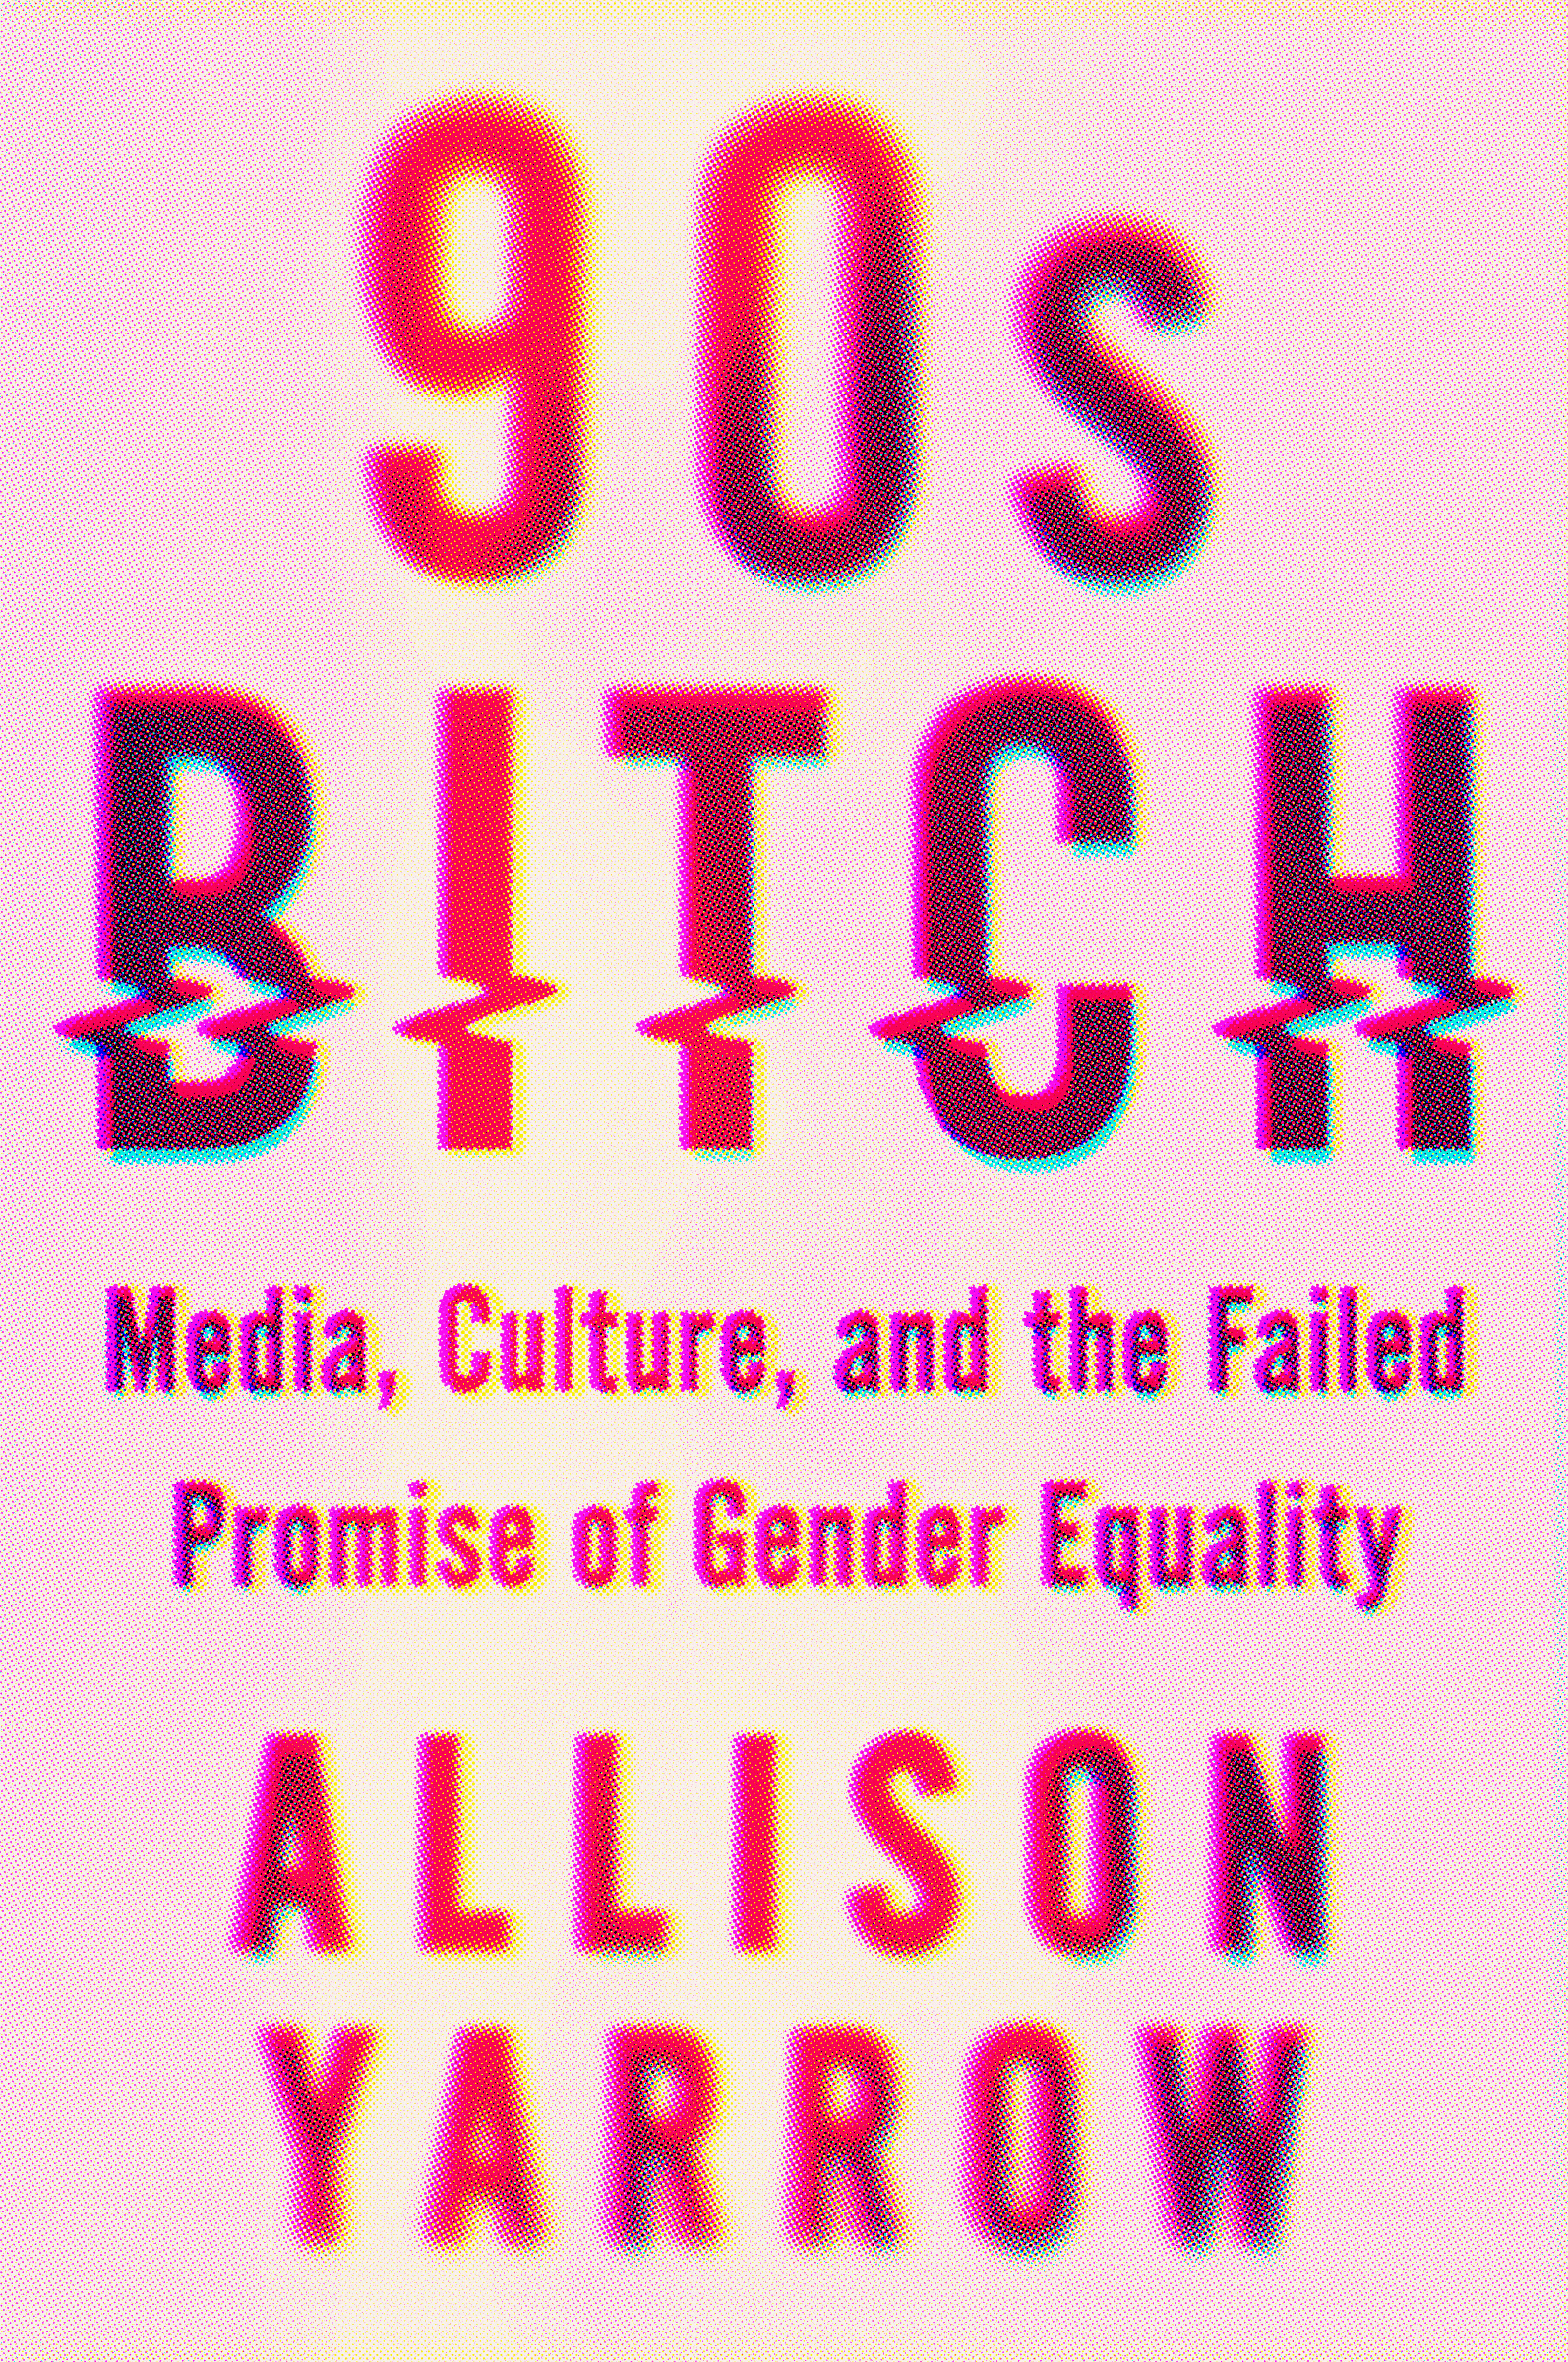 Book Launch: 90s Bitch: Media, Culture, and the Failed Promise of Gender Equality by Allison Yarrow — in conversation w/ Reshma Saujani